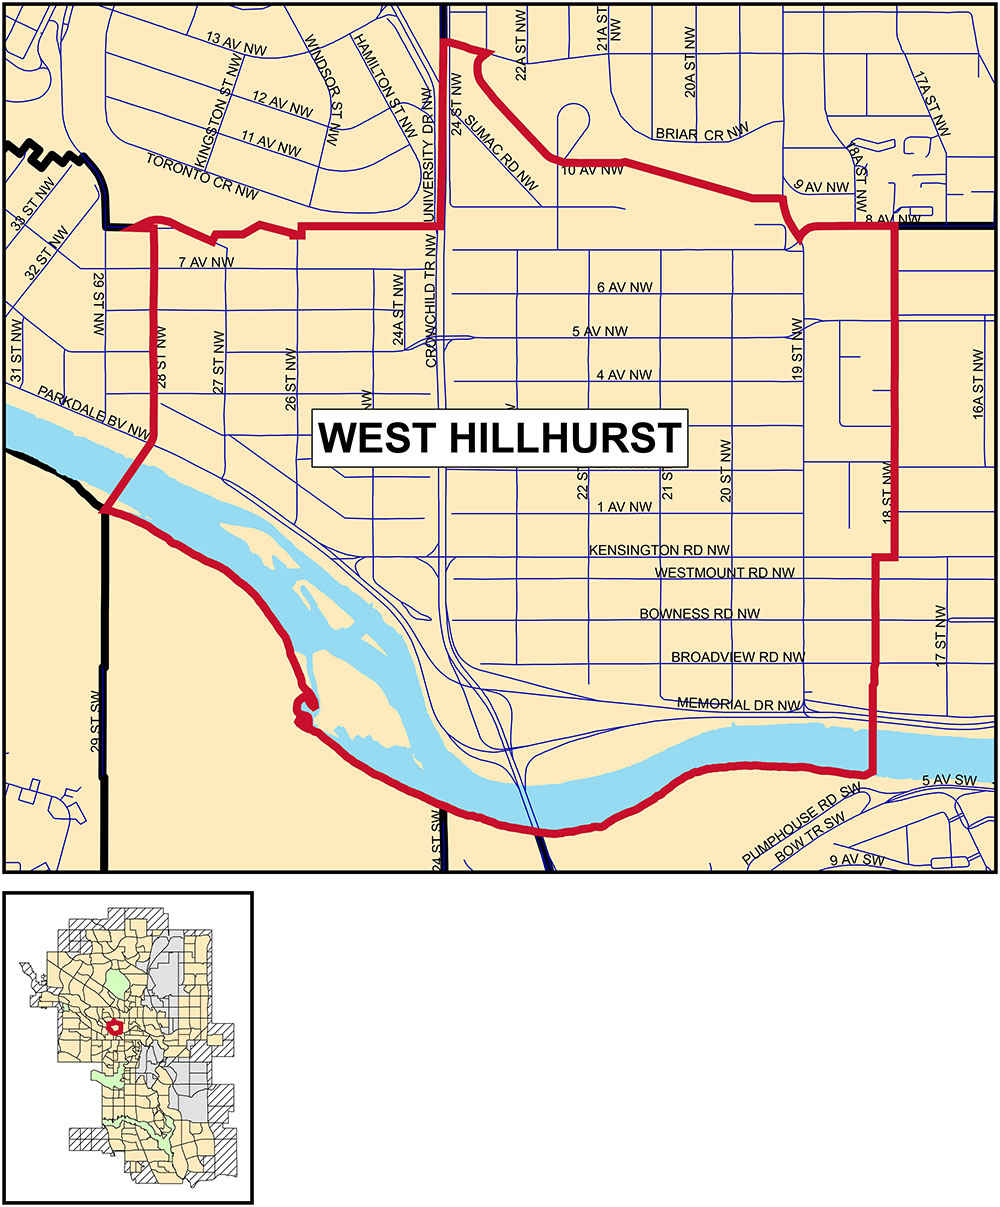 A map showing the community boundaries for West Hillhurst: •south of the bluff (roughly 9 Avenue northwest), north of the river, west of 18 Street northwest, and east of 28 Street northwest.